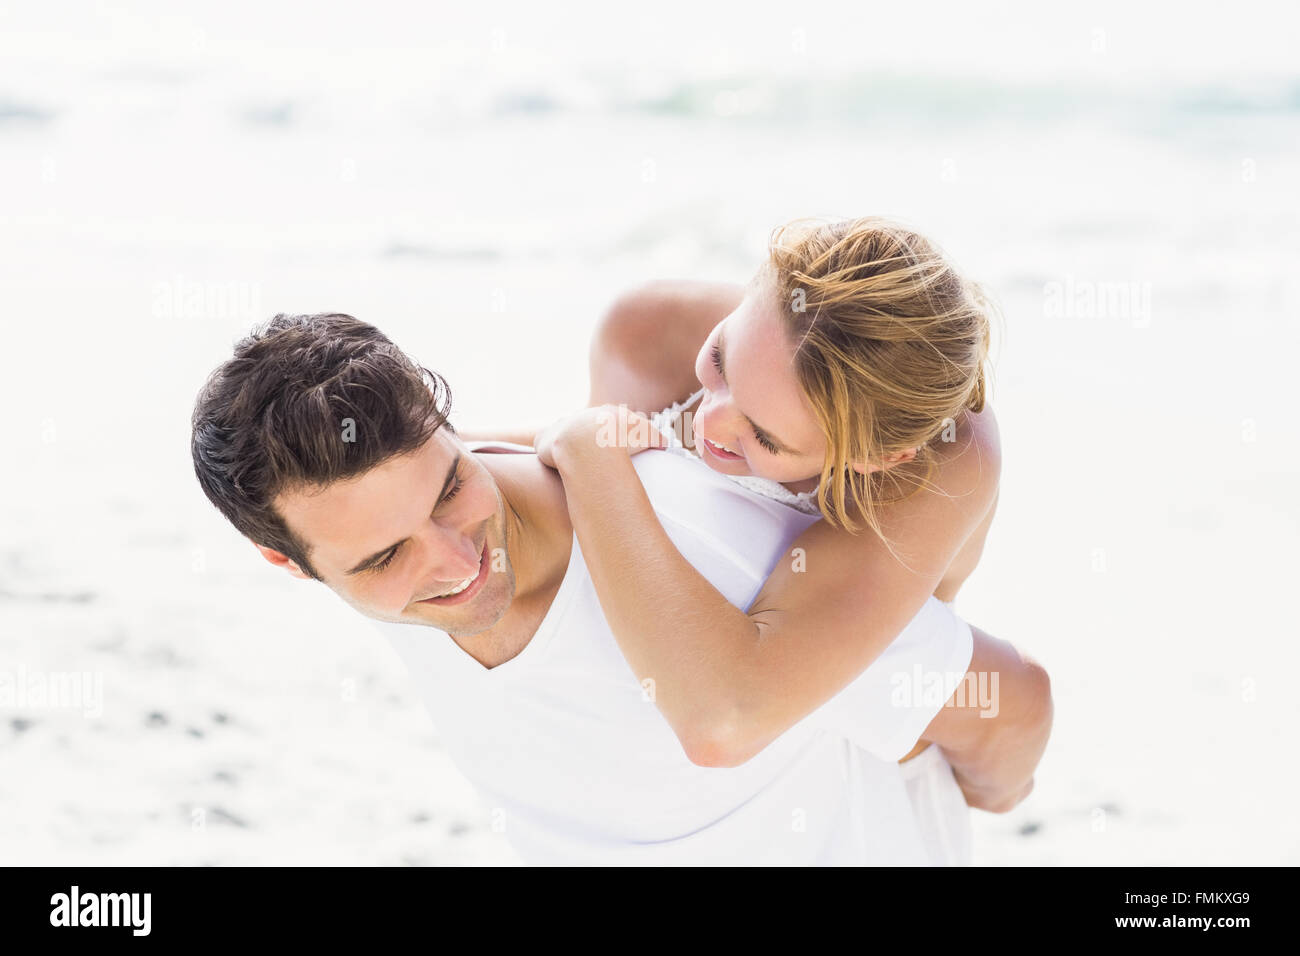 Man giving a piggy back to woman on the beach - Stock Image